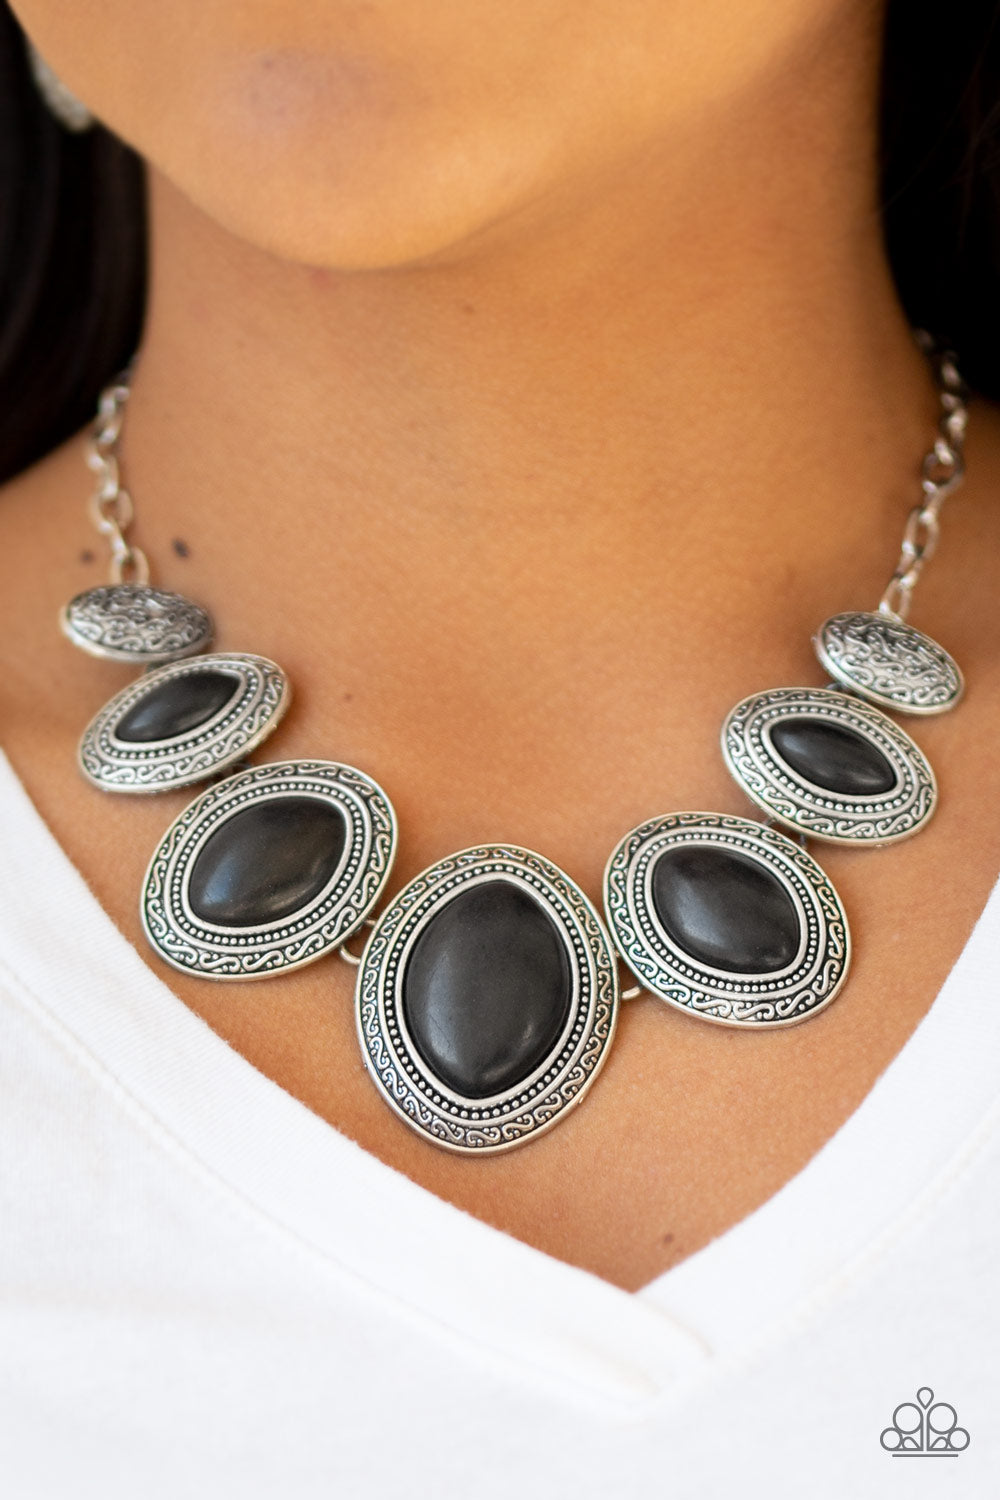 Paparazzi - Sierra Serenity - Black Necklace Set - Classy Jewels by Linda